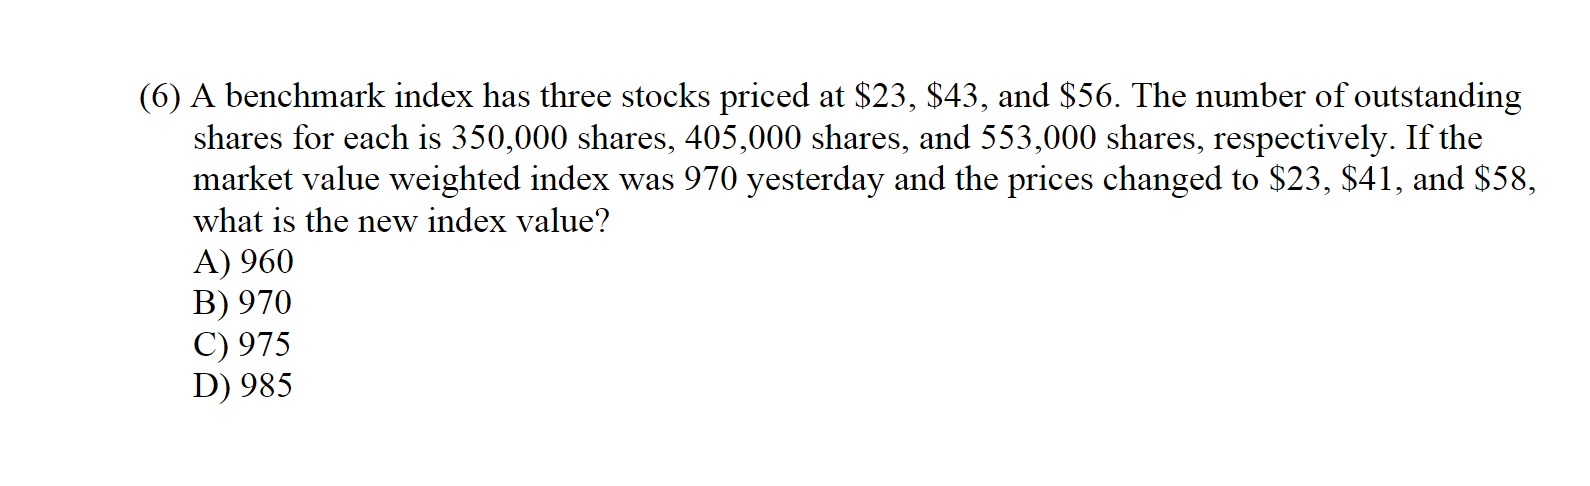 (6) A benchmark index has three stocks priced at $23, $43, and $56. The number of outstanding shares for each is 350,000 shares, 405,000 shares, and 553,000 shares, respectively. If the market value weighted index was 970 yesterday and the prices changed to $23, $41, and $58 what is the new index value? A) 960 B) 970 C) 975 D) 985